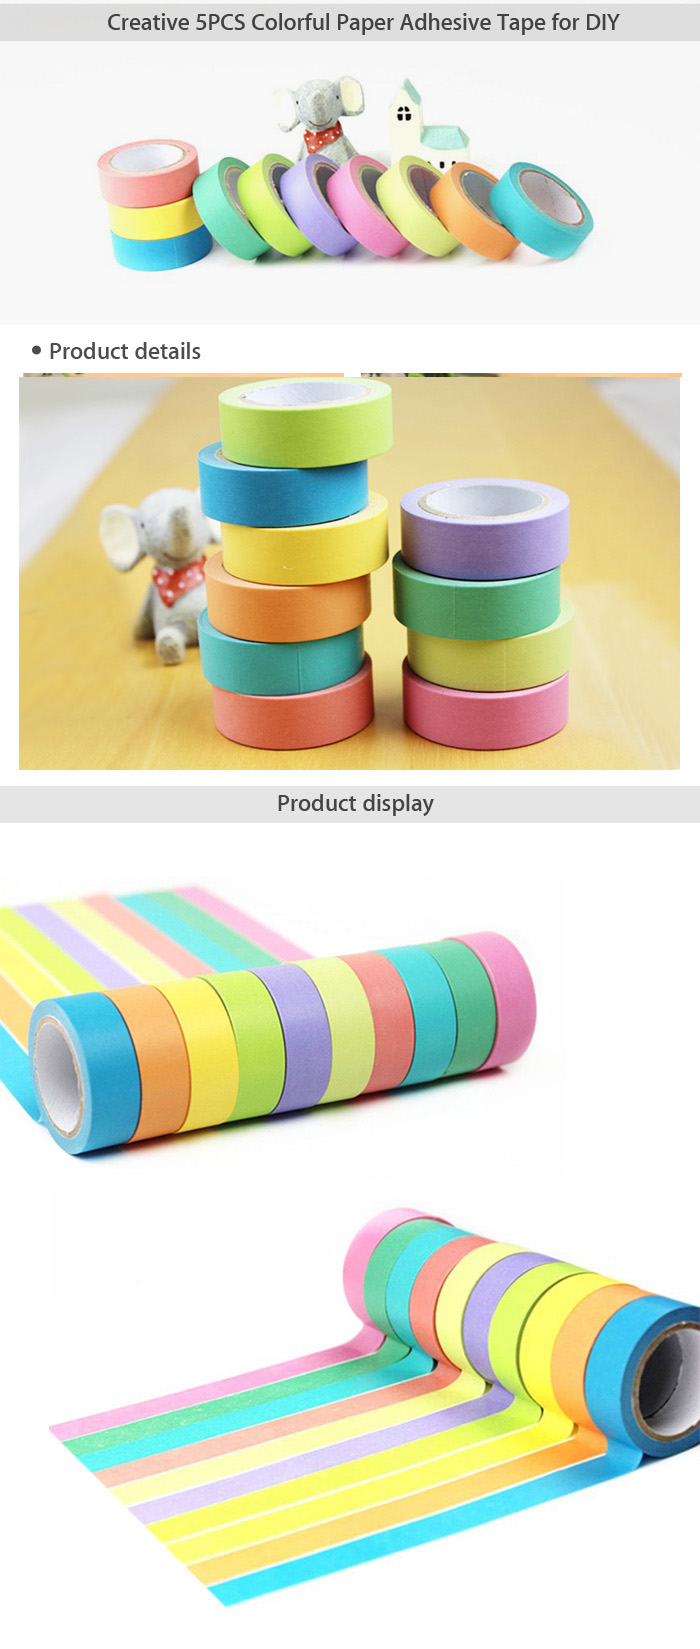 10m Creative 5PCS Colorful Paper Adhesive Tape Office / Student Supplies